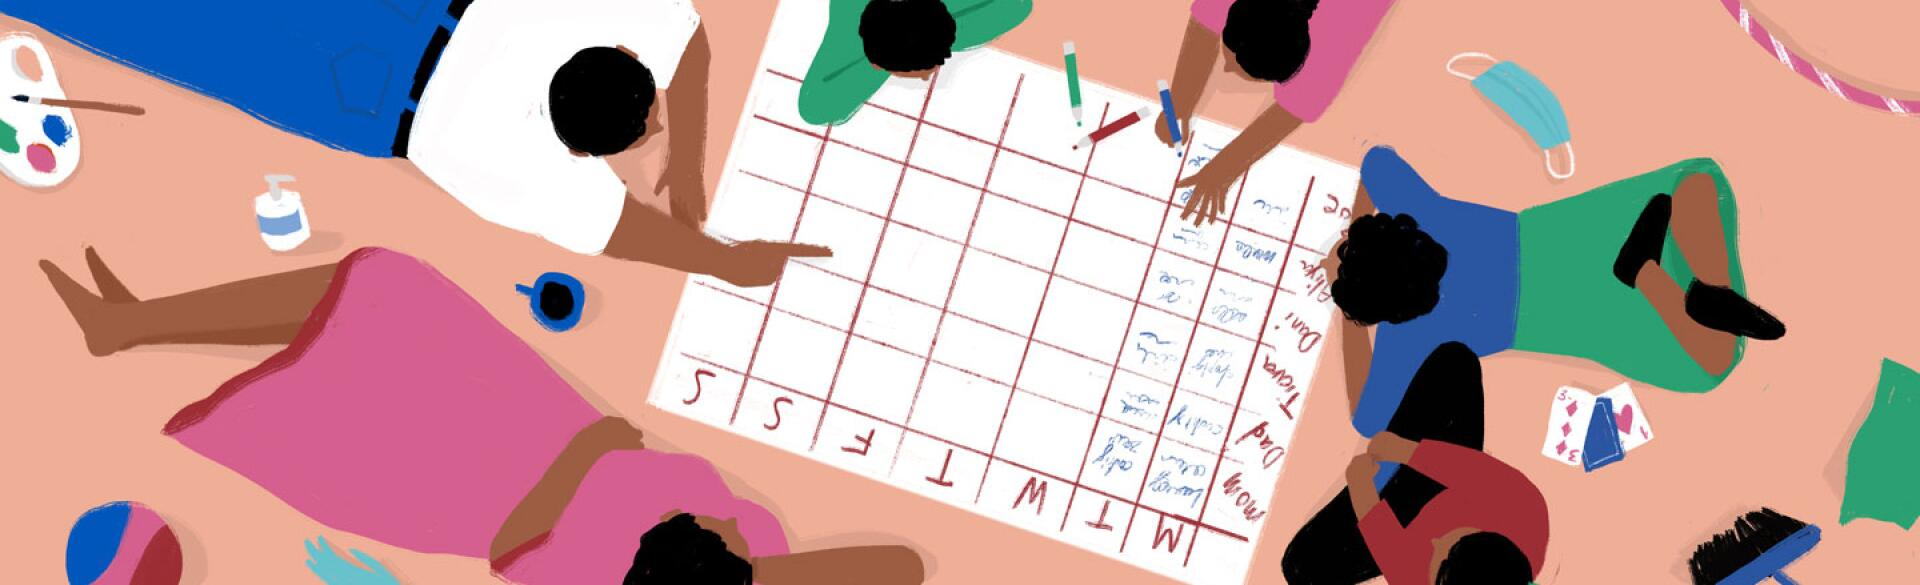 illustration_of_family_creating_a_schedule_by_maya_ish_shalom_1440x584.jpg